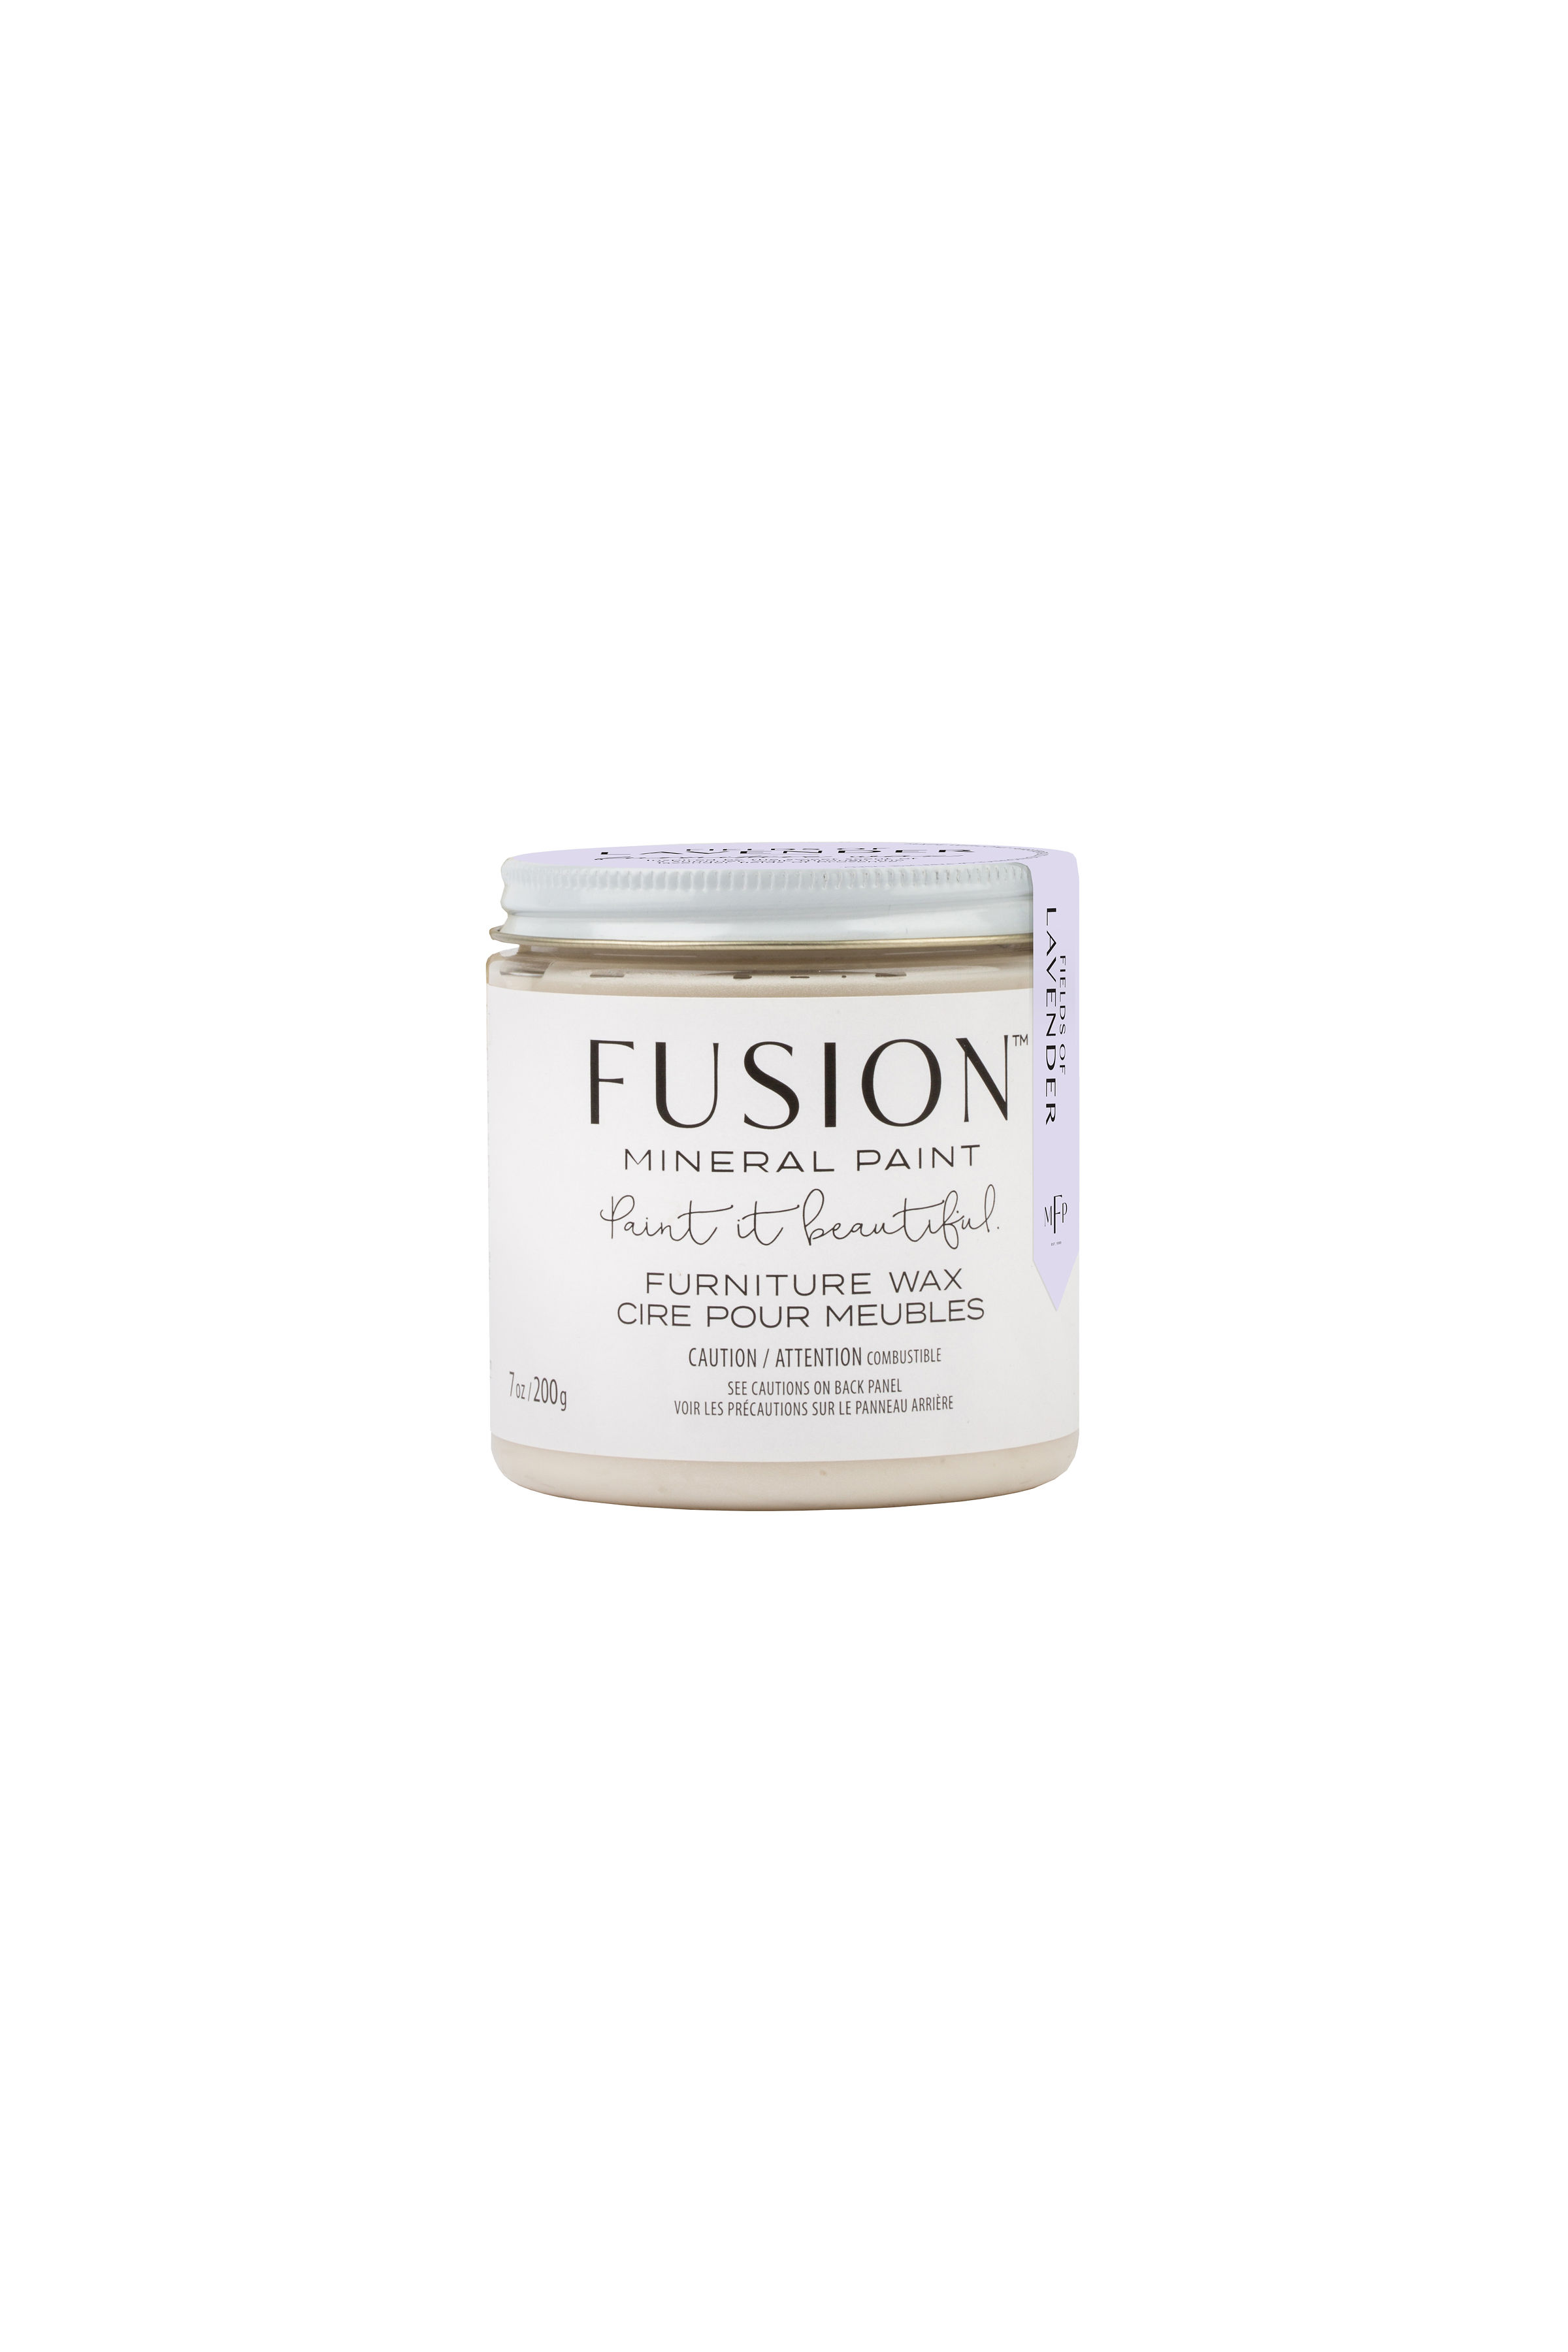 fusion_mineral_paint-wax-lavender-200g